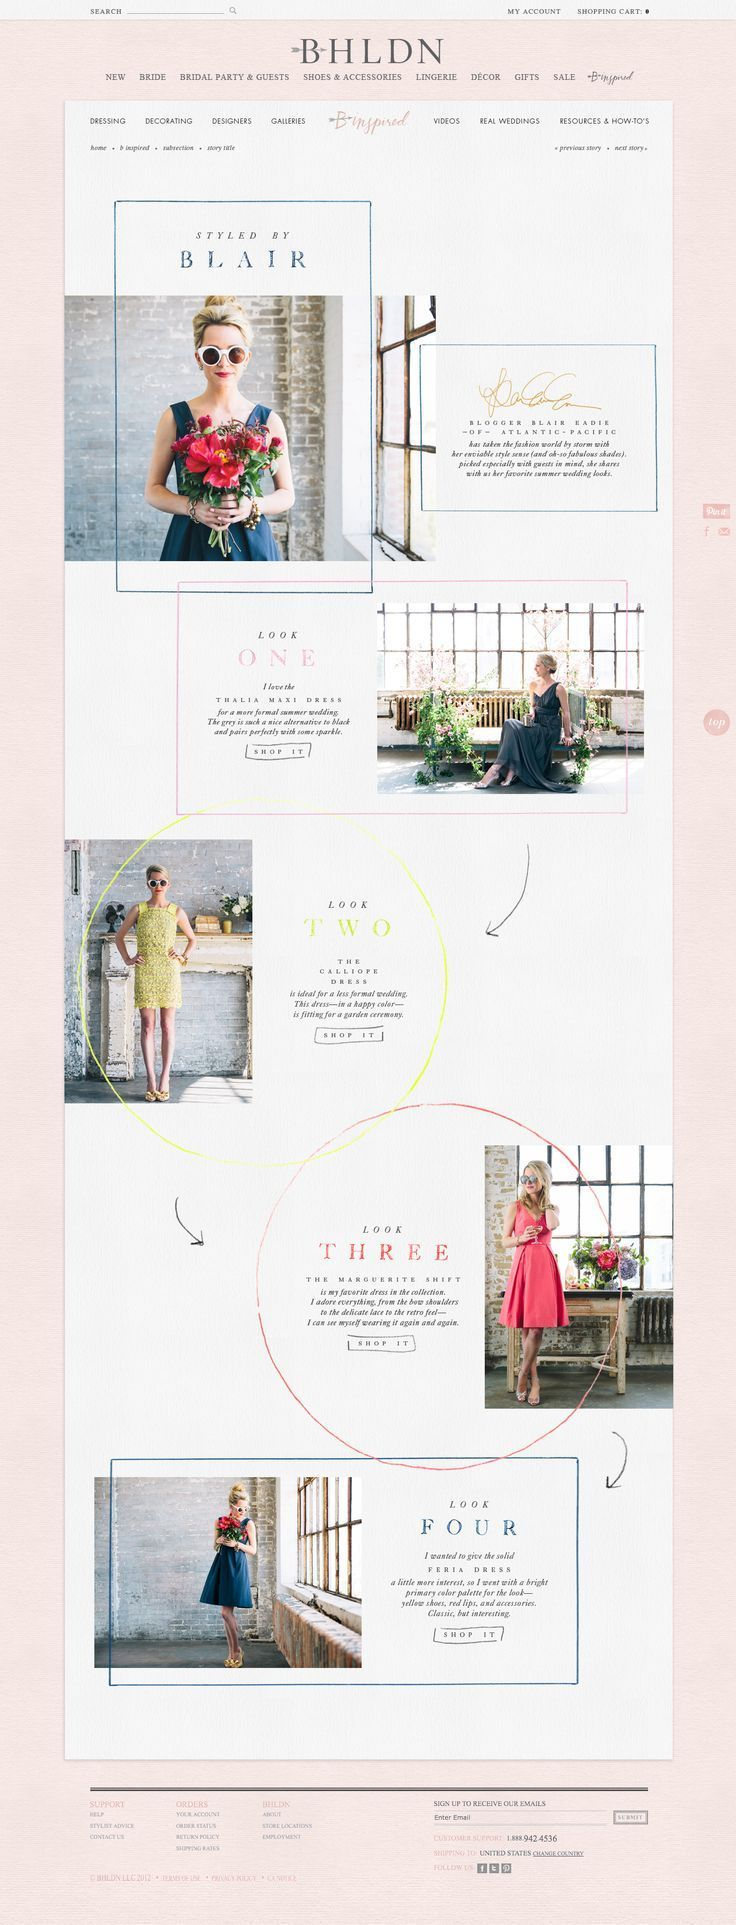 Elysse Ricci Más beautiful and simple feminine website design: http://www.elyssericci.com/   #gentlewoman #girl #woman